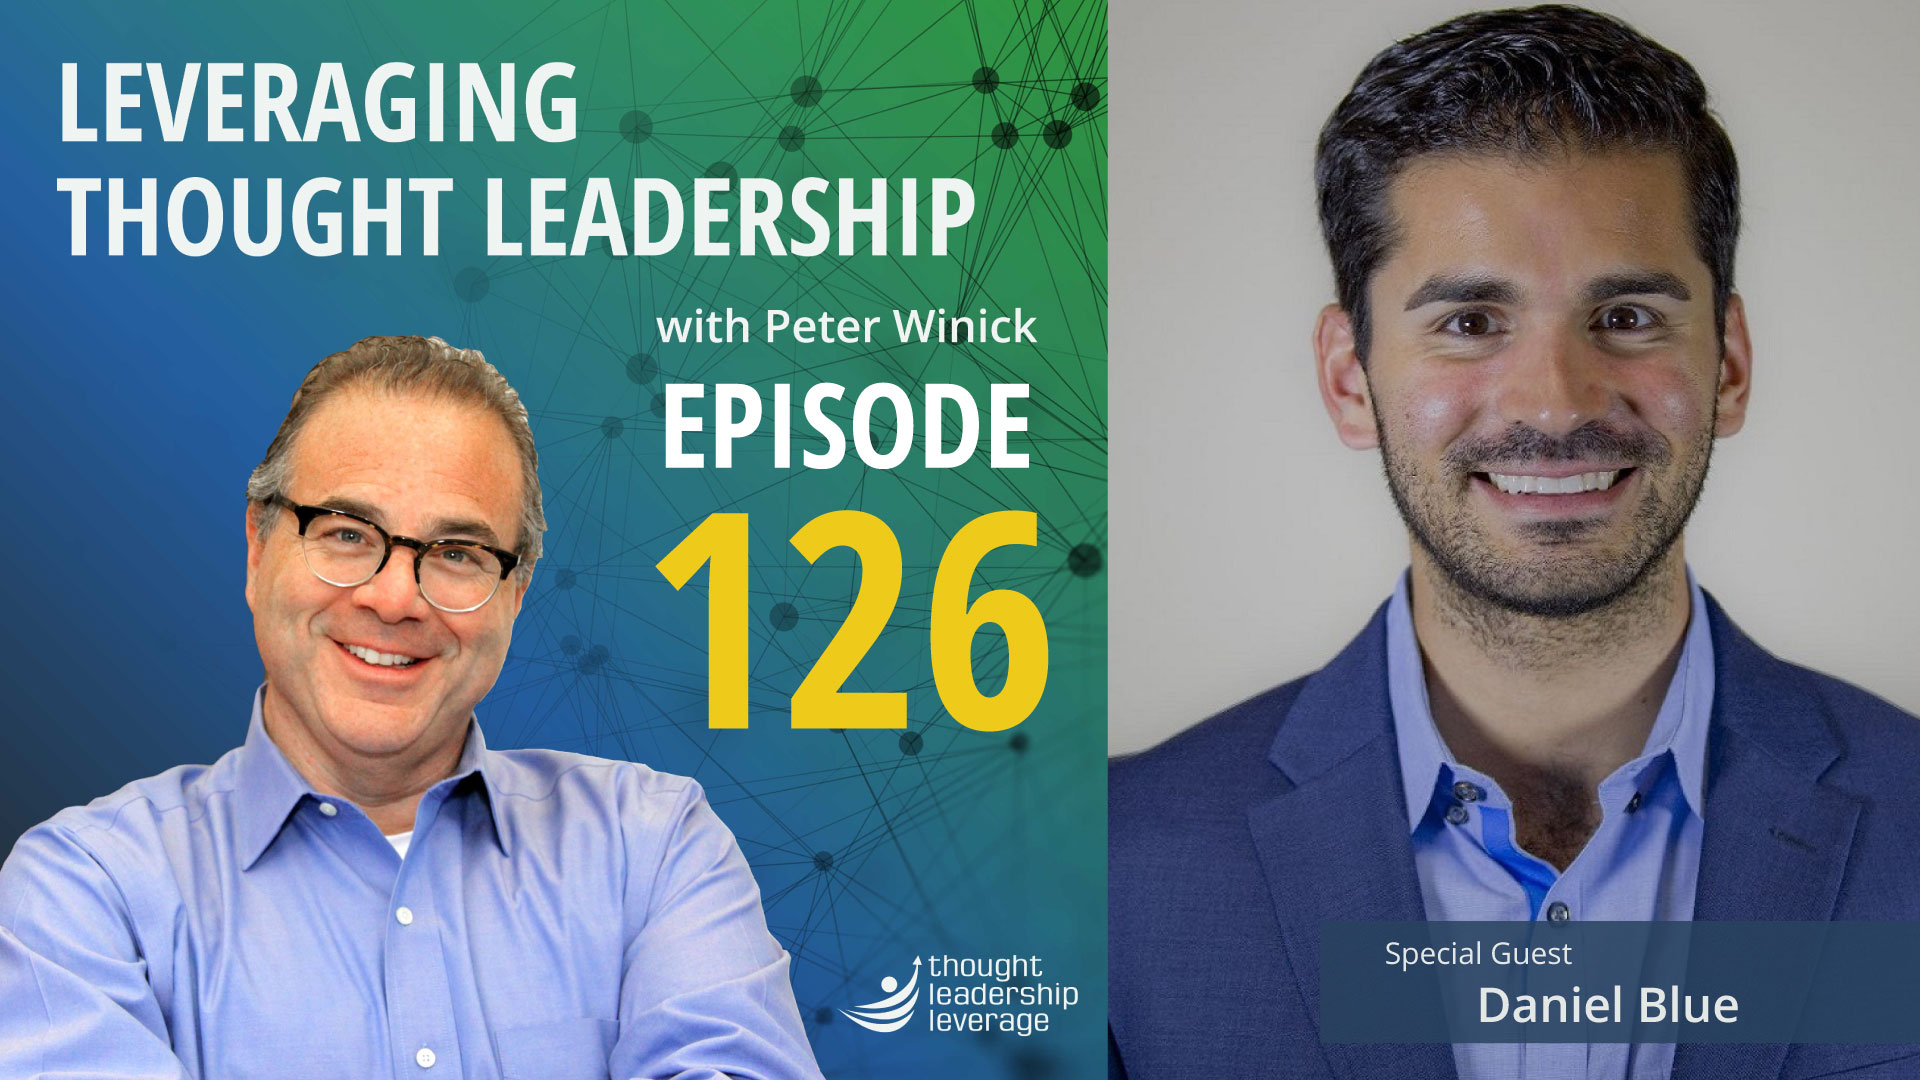 Leveraging Thought Leadership - Episode 126 - Peter Winick and Daniel Blue